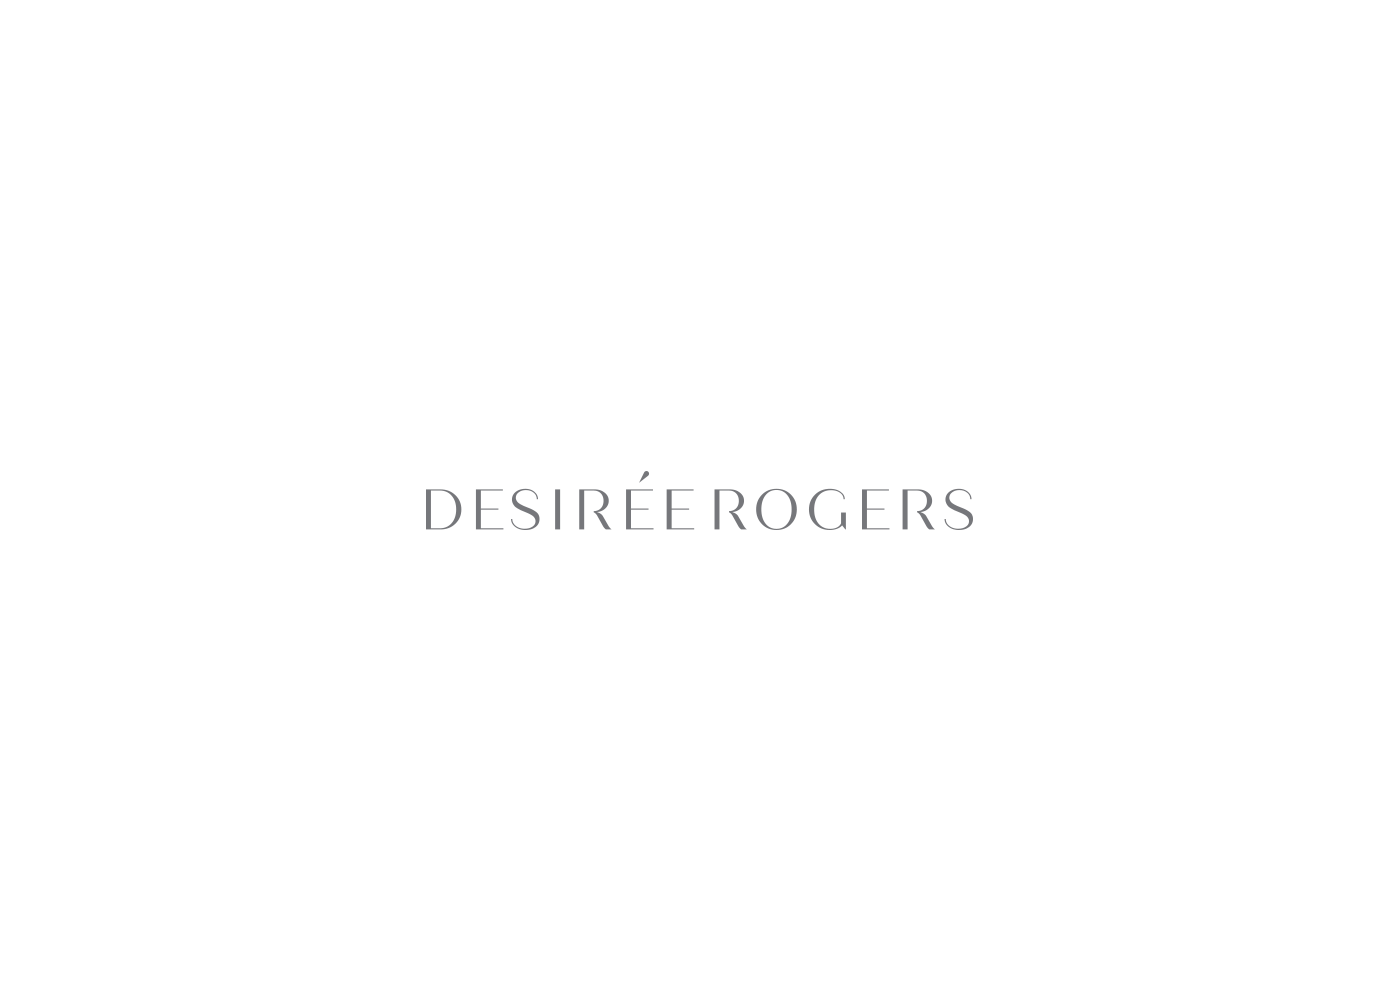 desiree-rogers-personal-brand-01.png